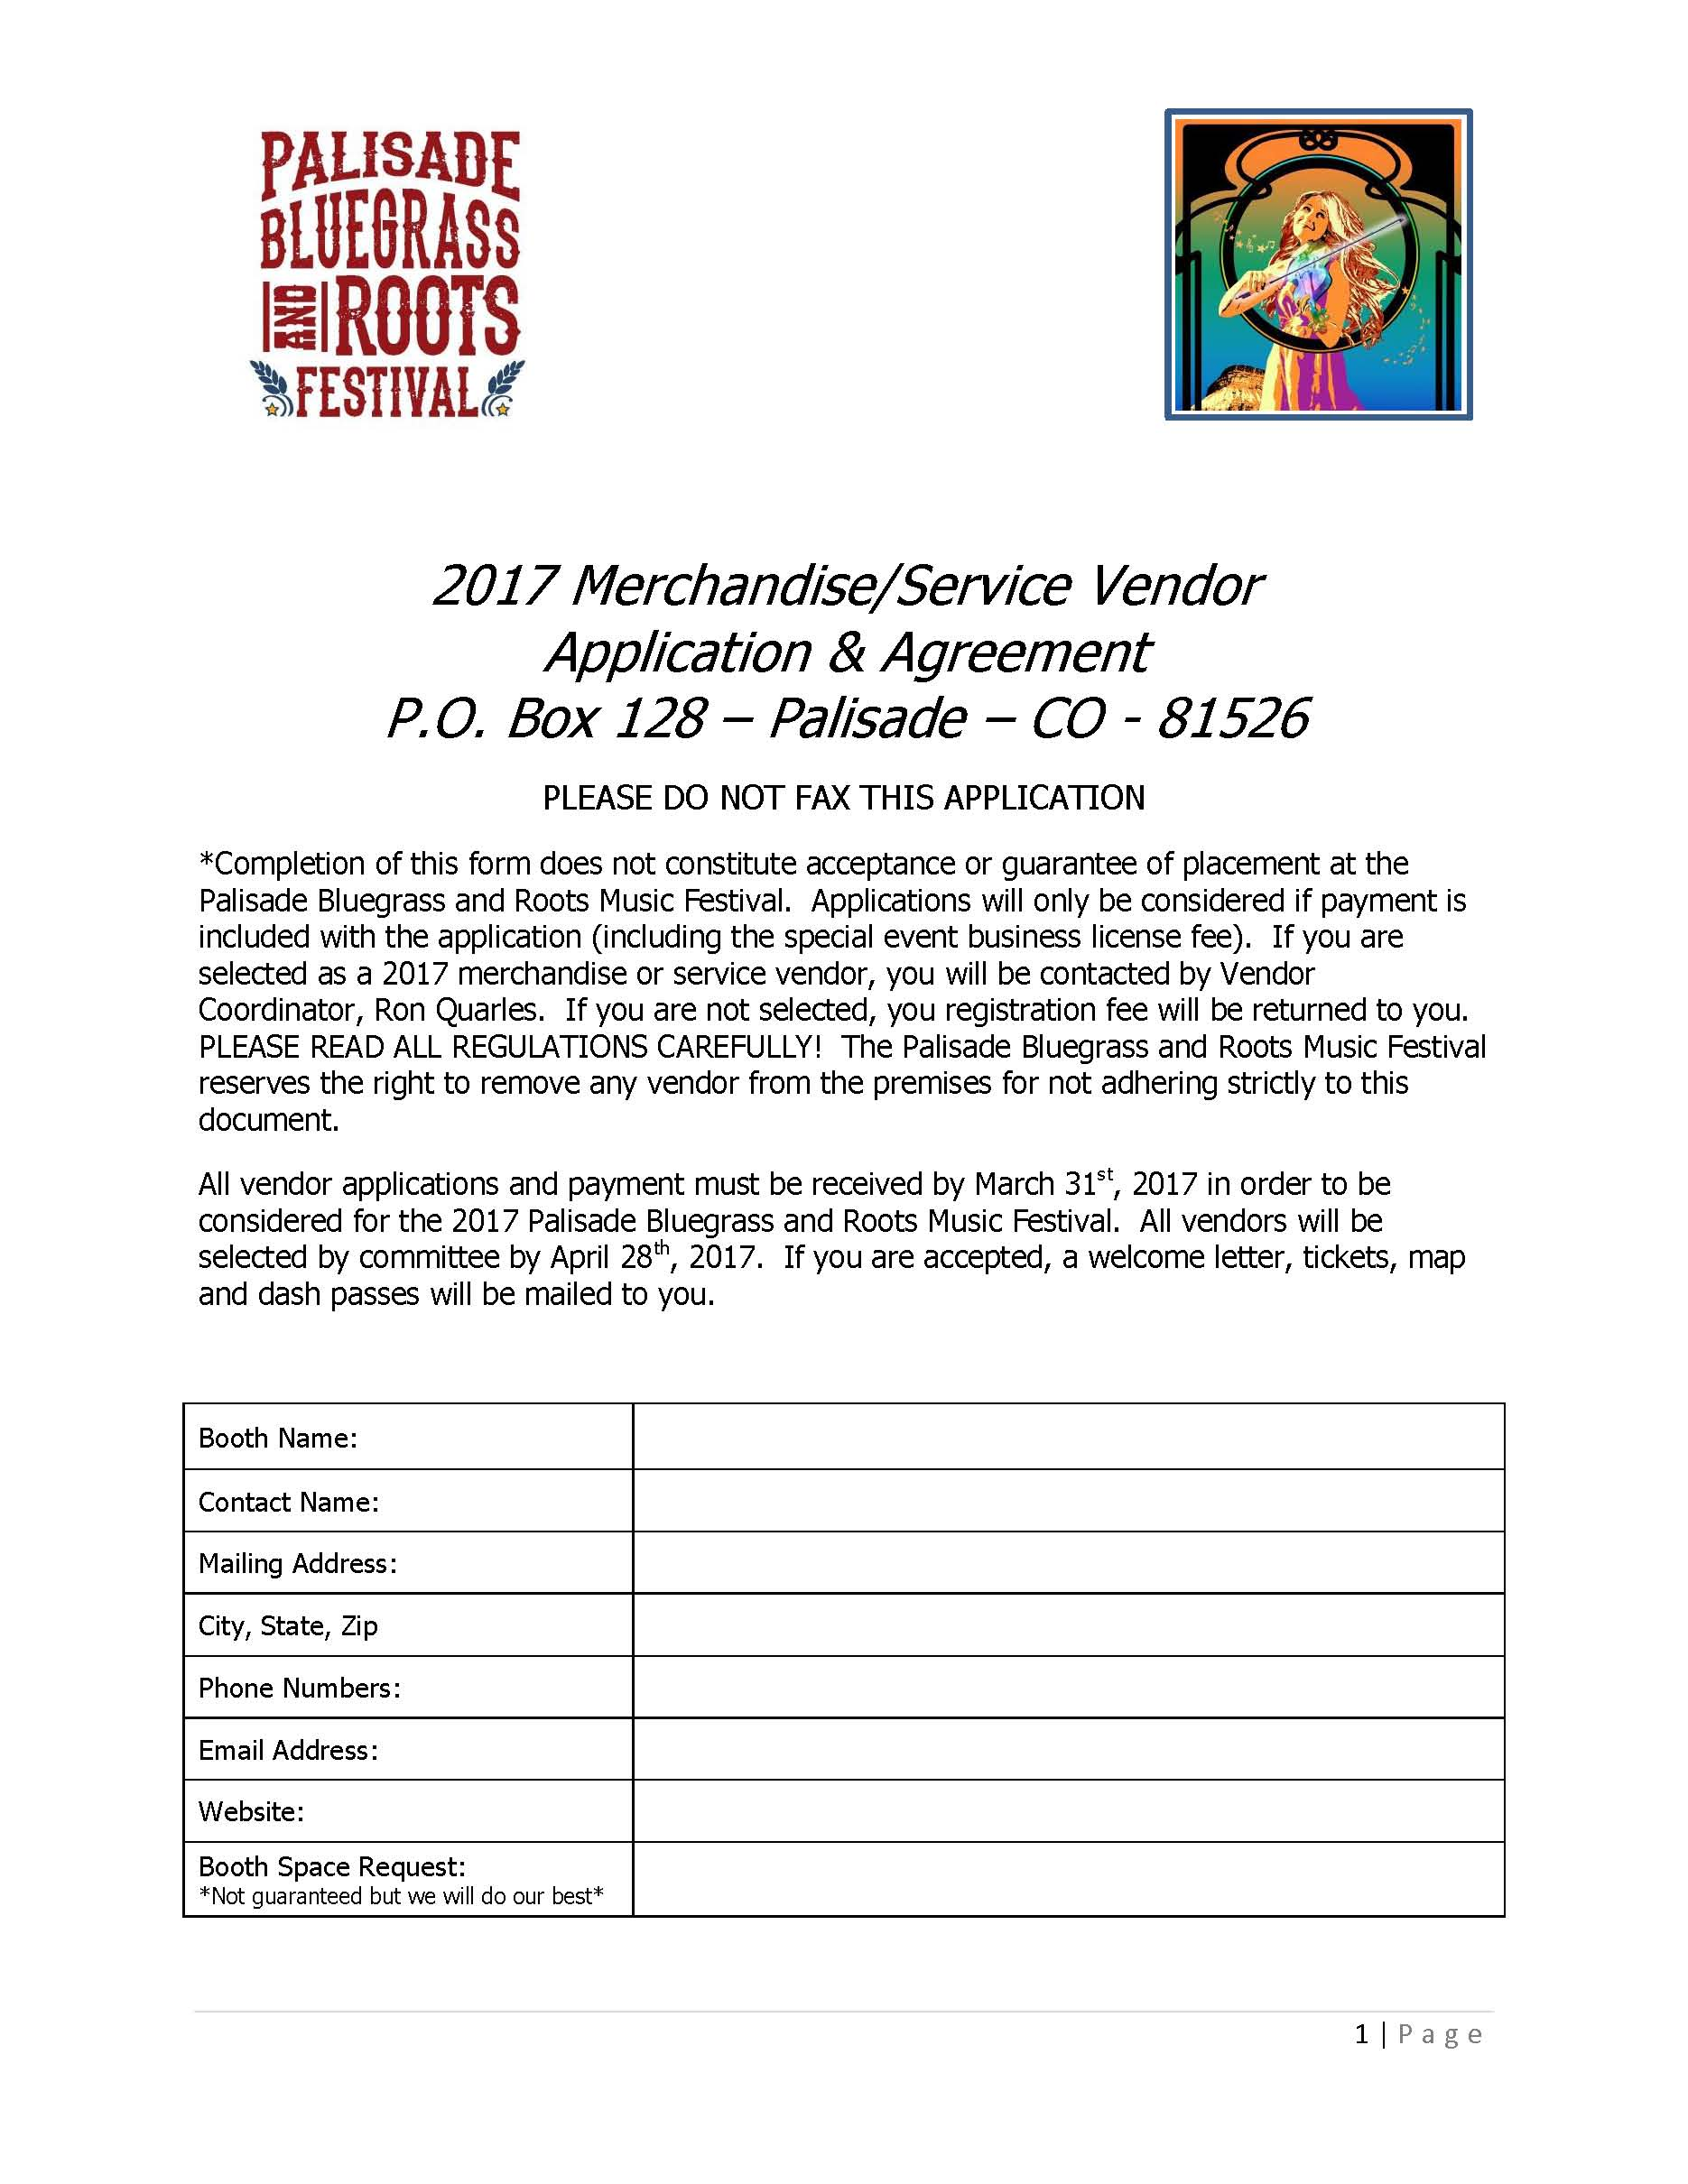 2017 Merchandise Service Vendor Application Page 1